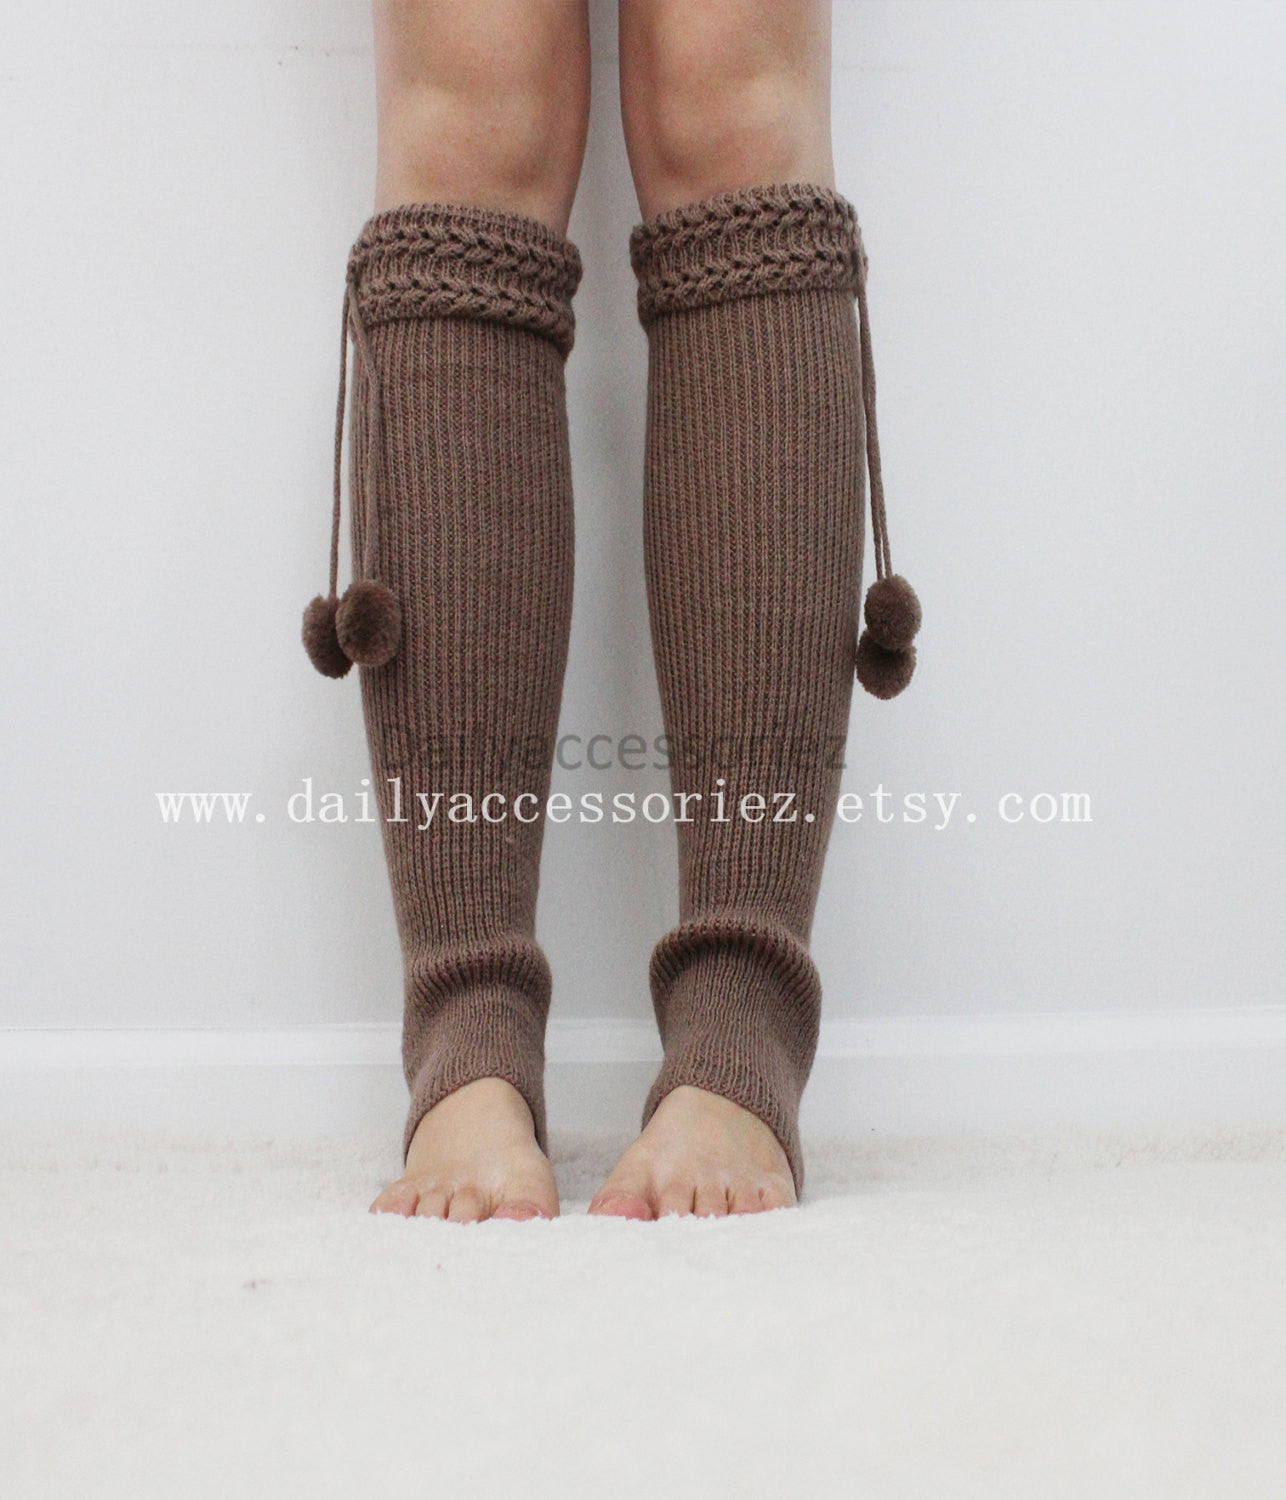 heather gray womens leg warmers - Bean Concept - Etsy